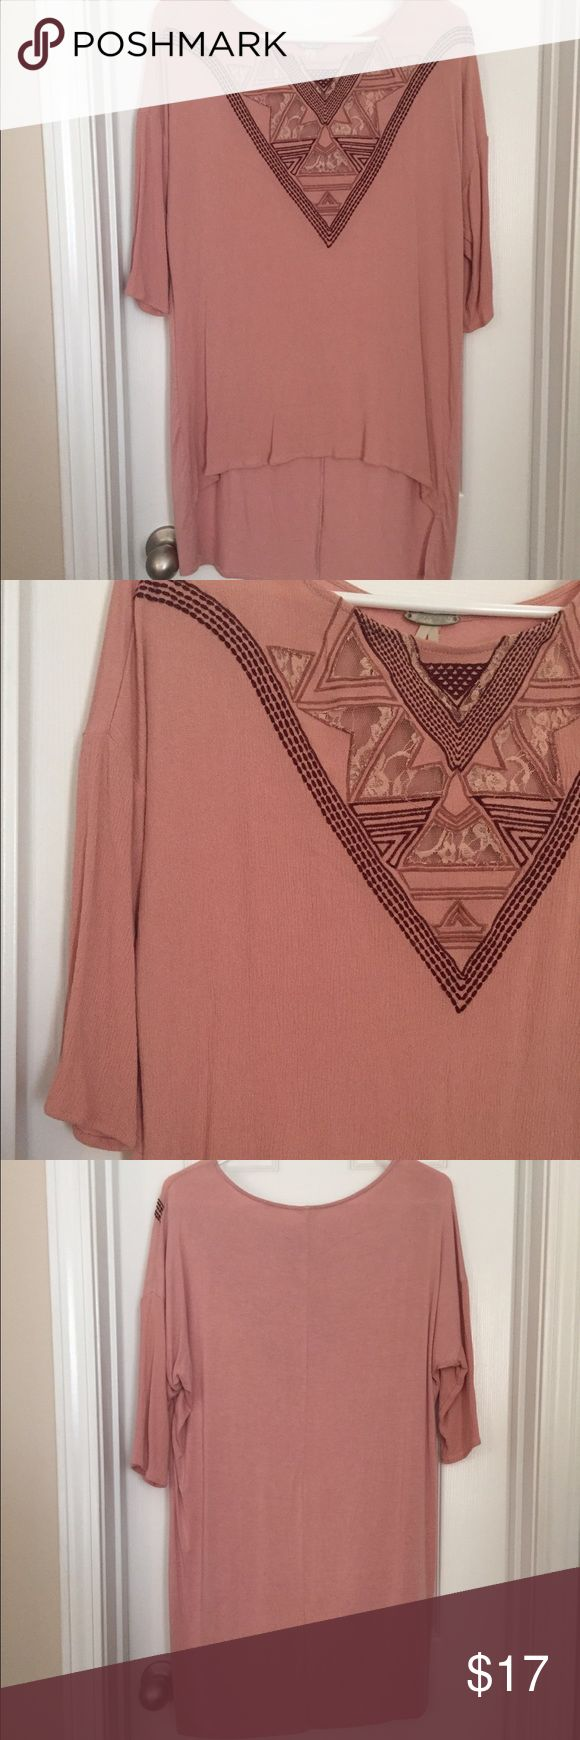 GIMMICKS BY BKE Light pink top with detail at neckline, high low hem ! GUC DUE TO WASH AND WEAR, even though it's only been worn once ! Wash cold and delicate! Gimmicks Tops